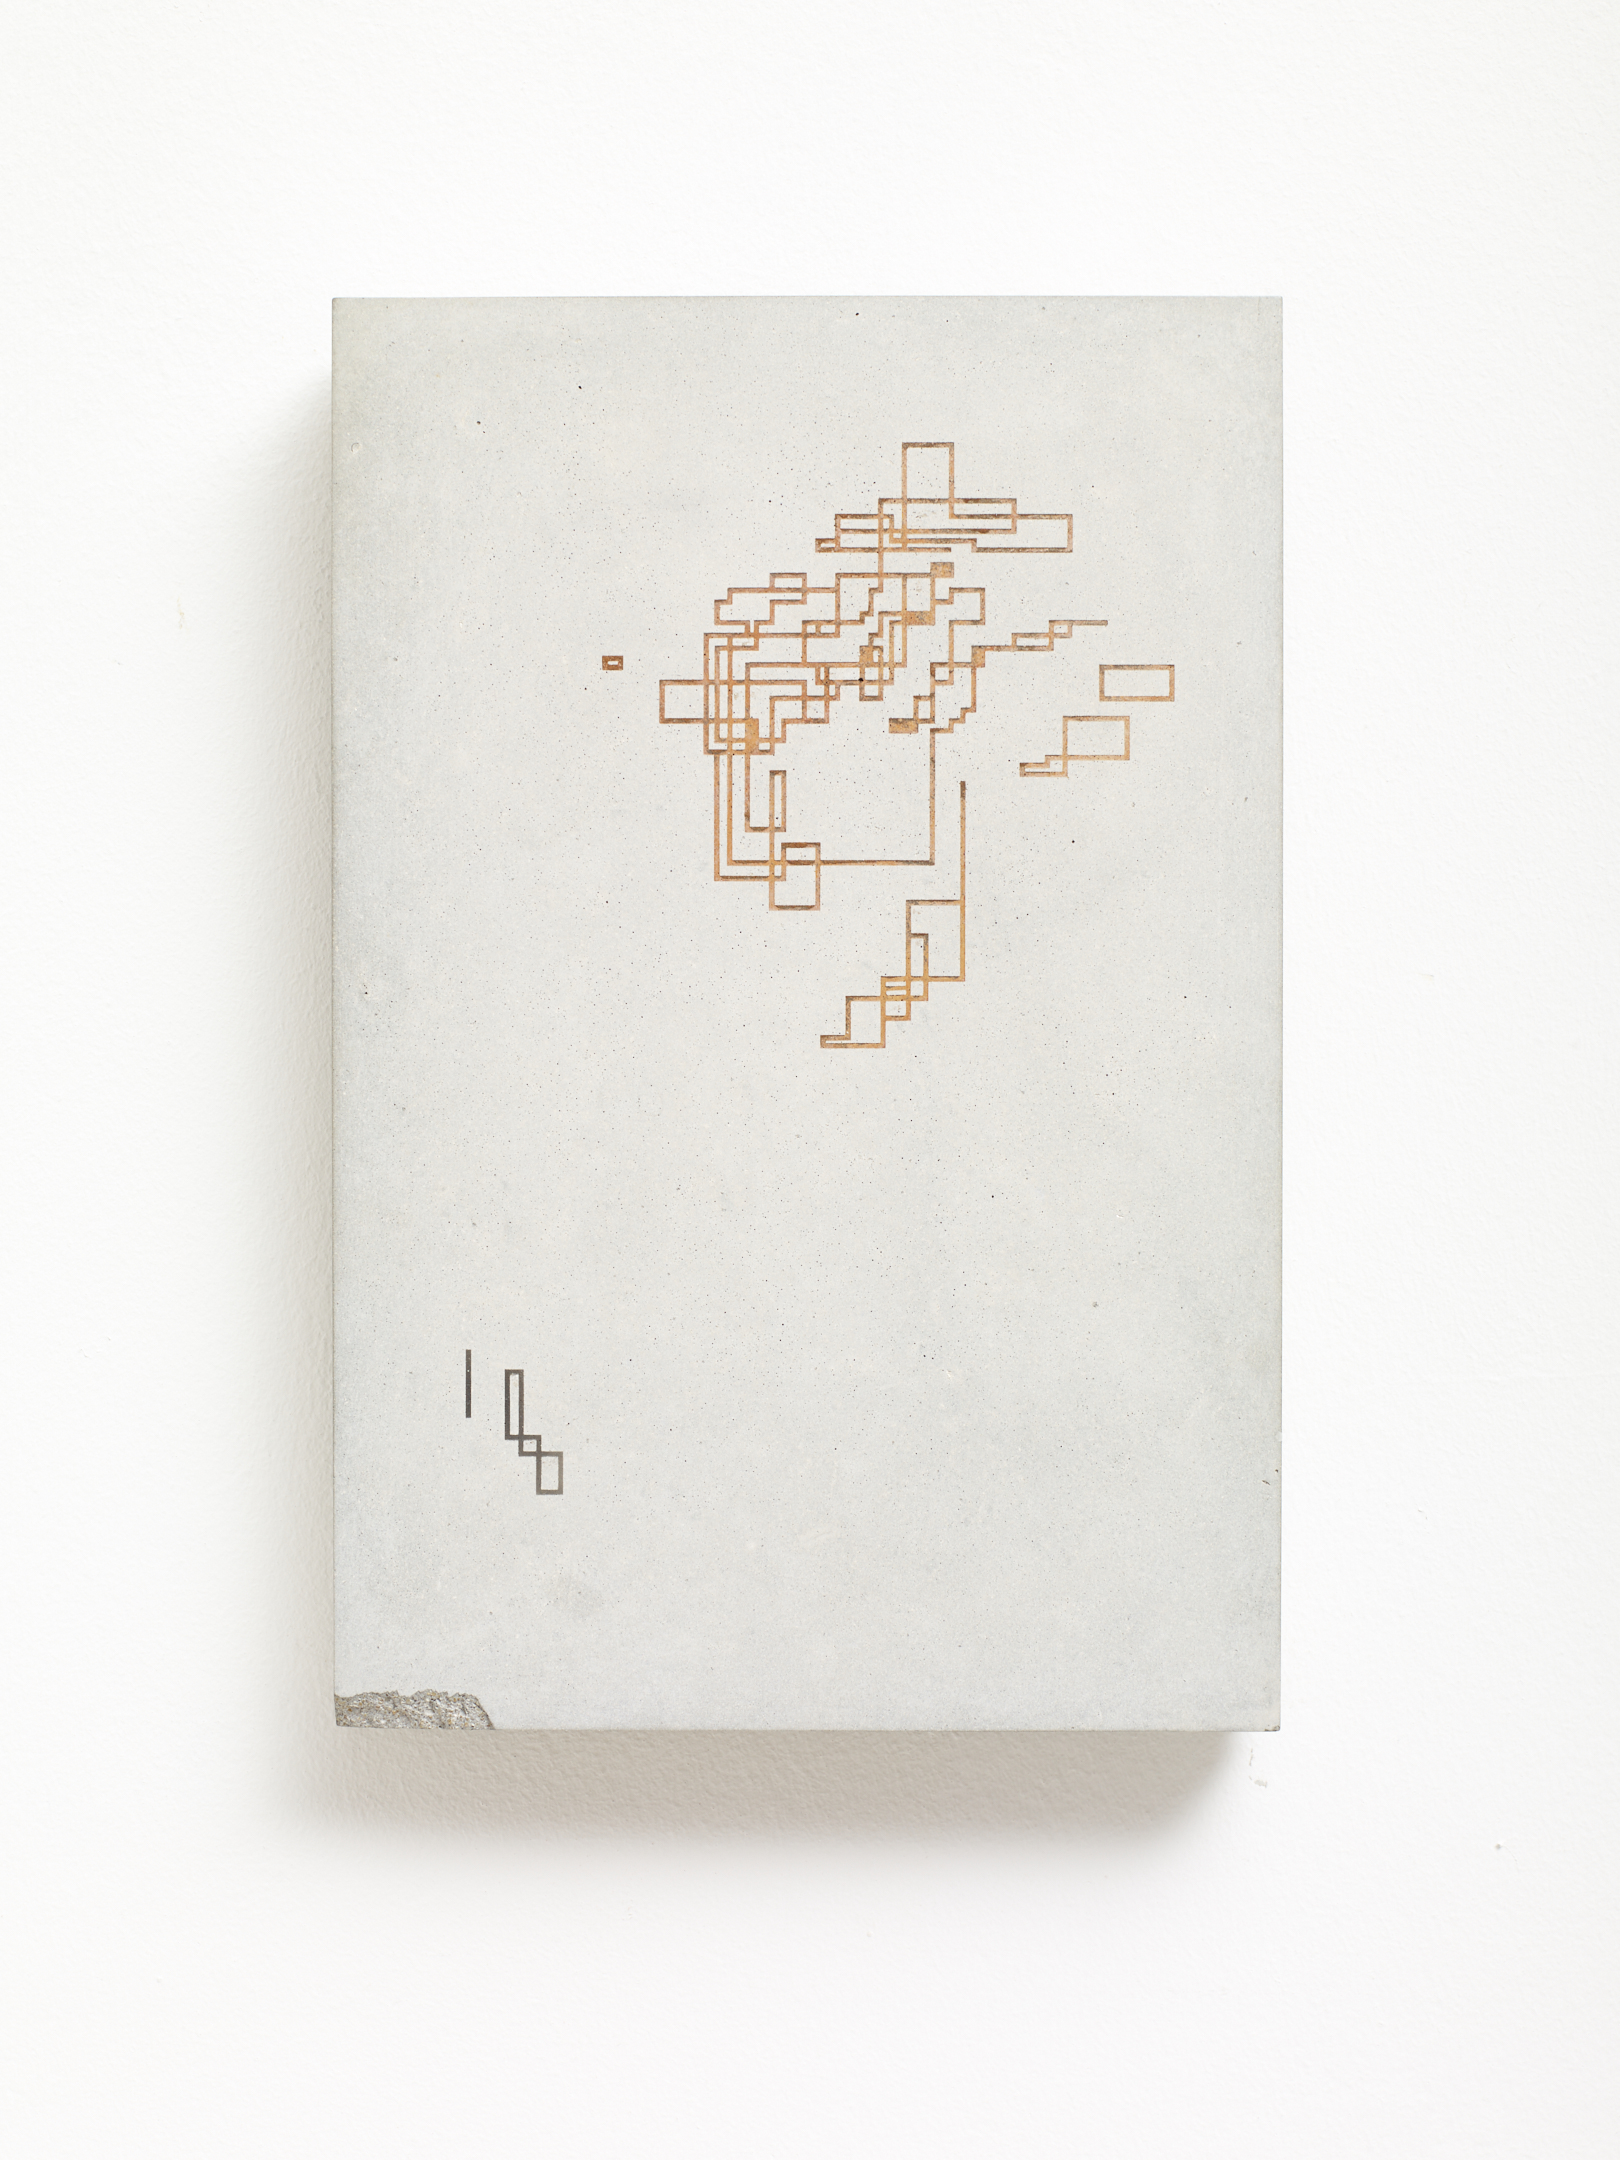 Victor Seaward  Structures , 2018 Rust and smoke residue on cast concrete panel 23.5 x 16 cm